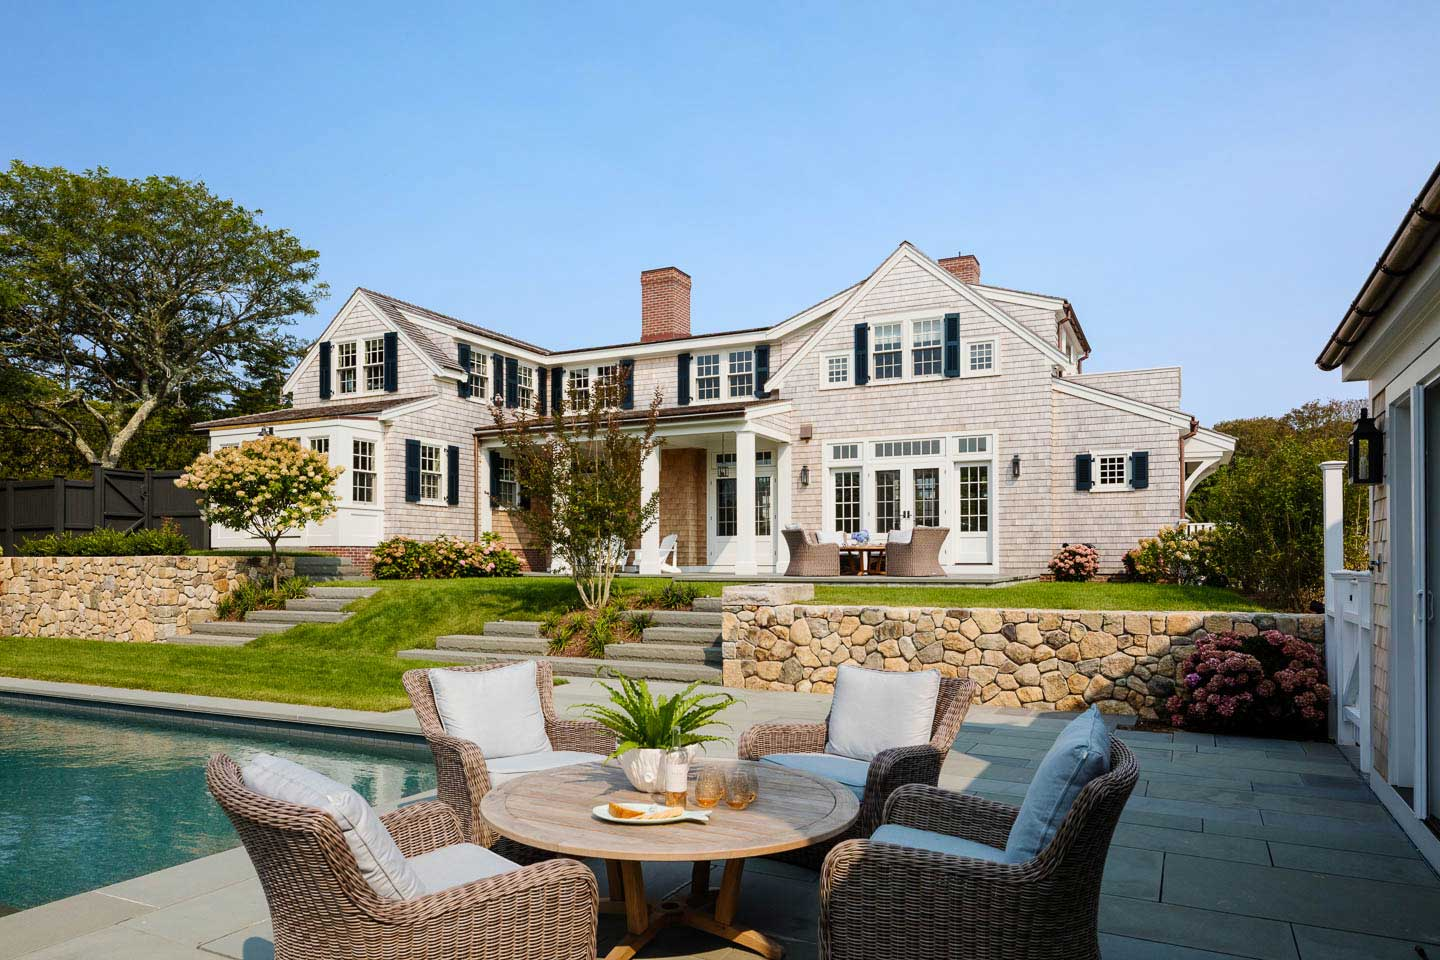 cape cod house, pool, outdoor seating, stone wall, outdoor dining, backyard